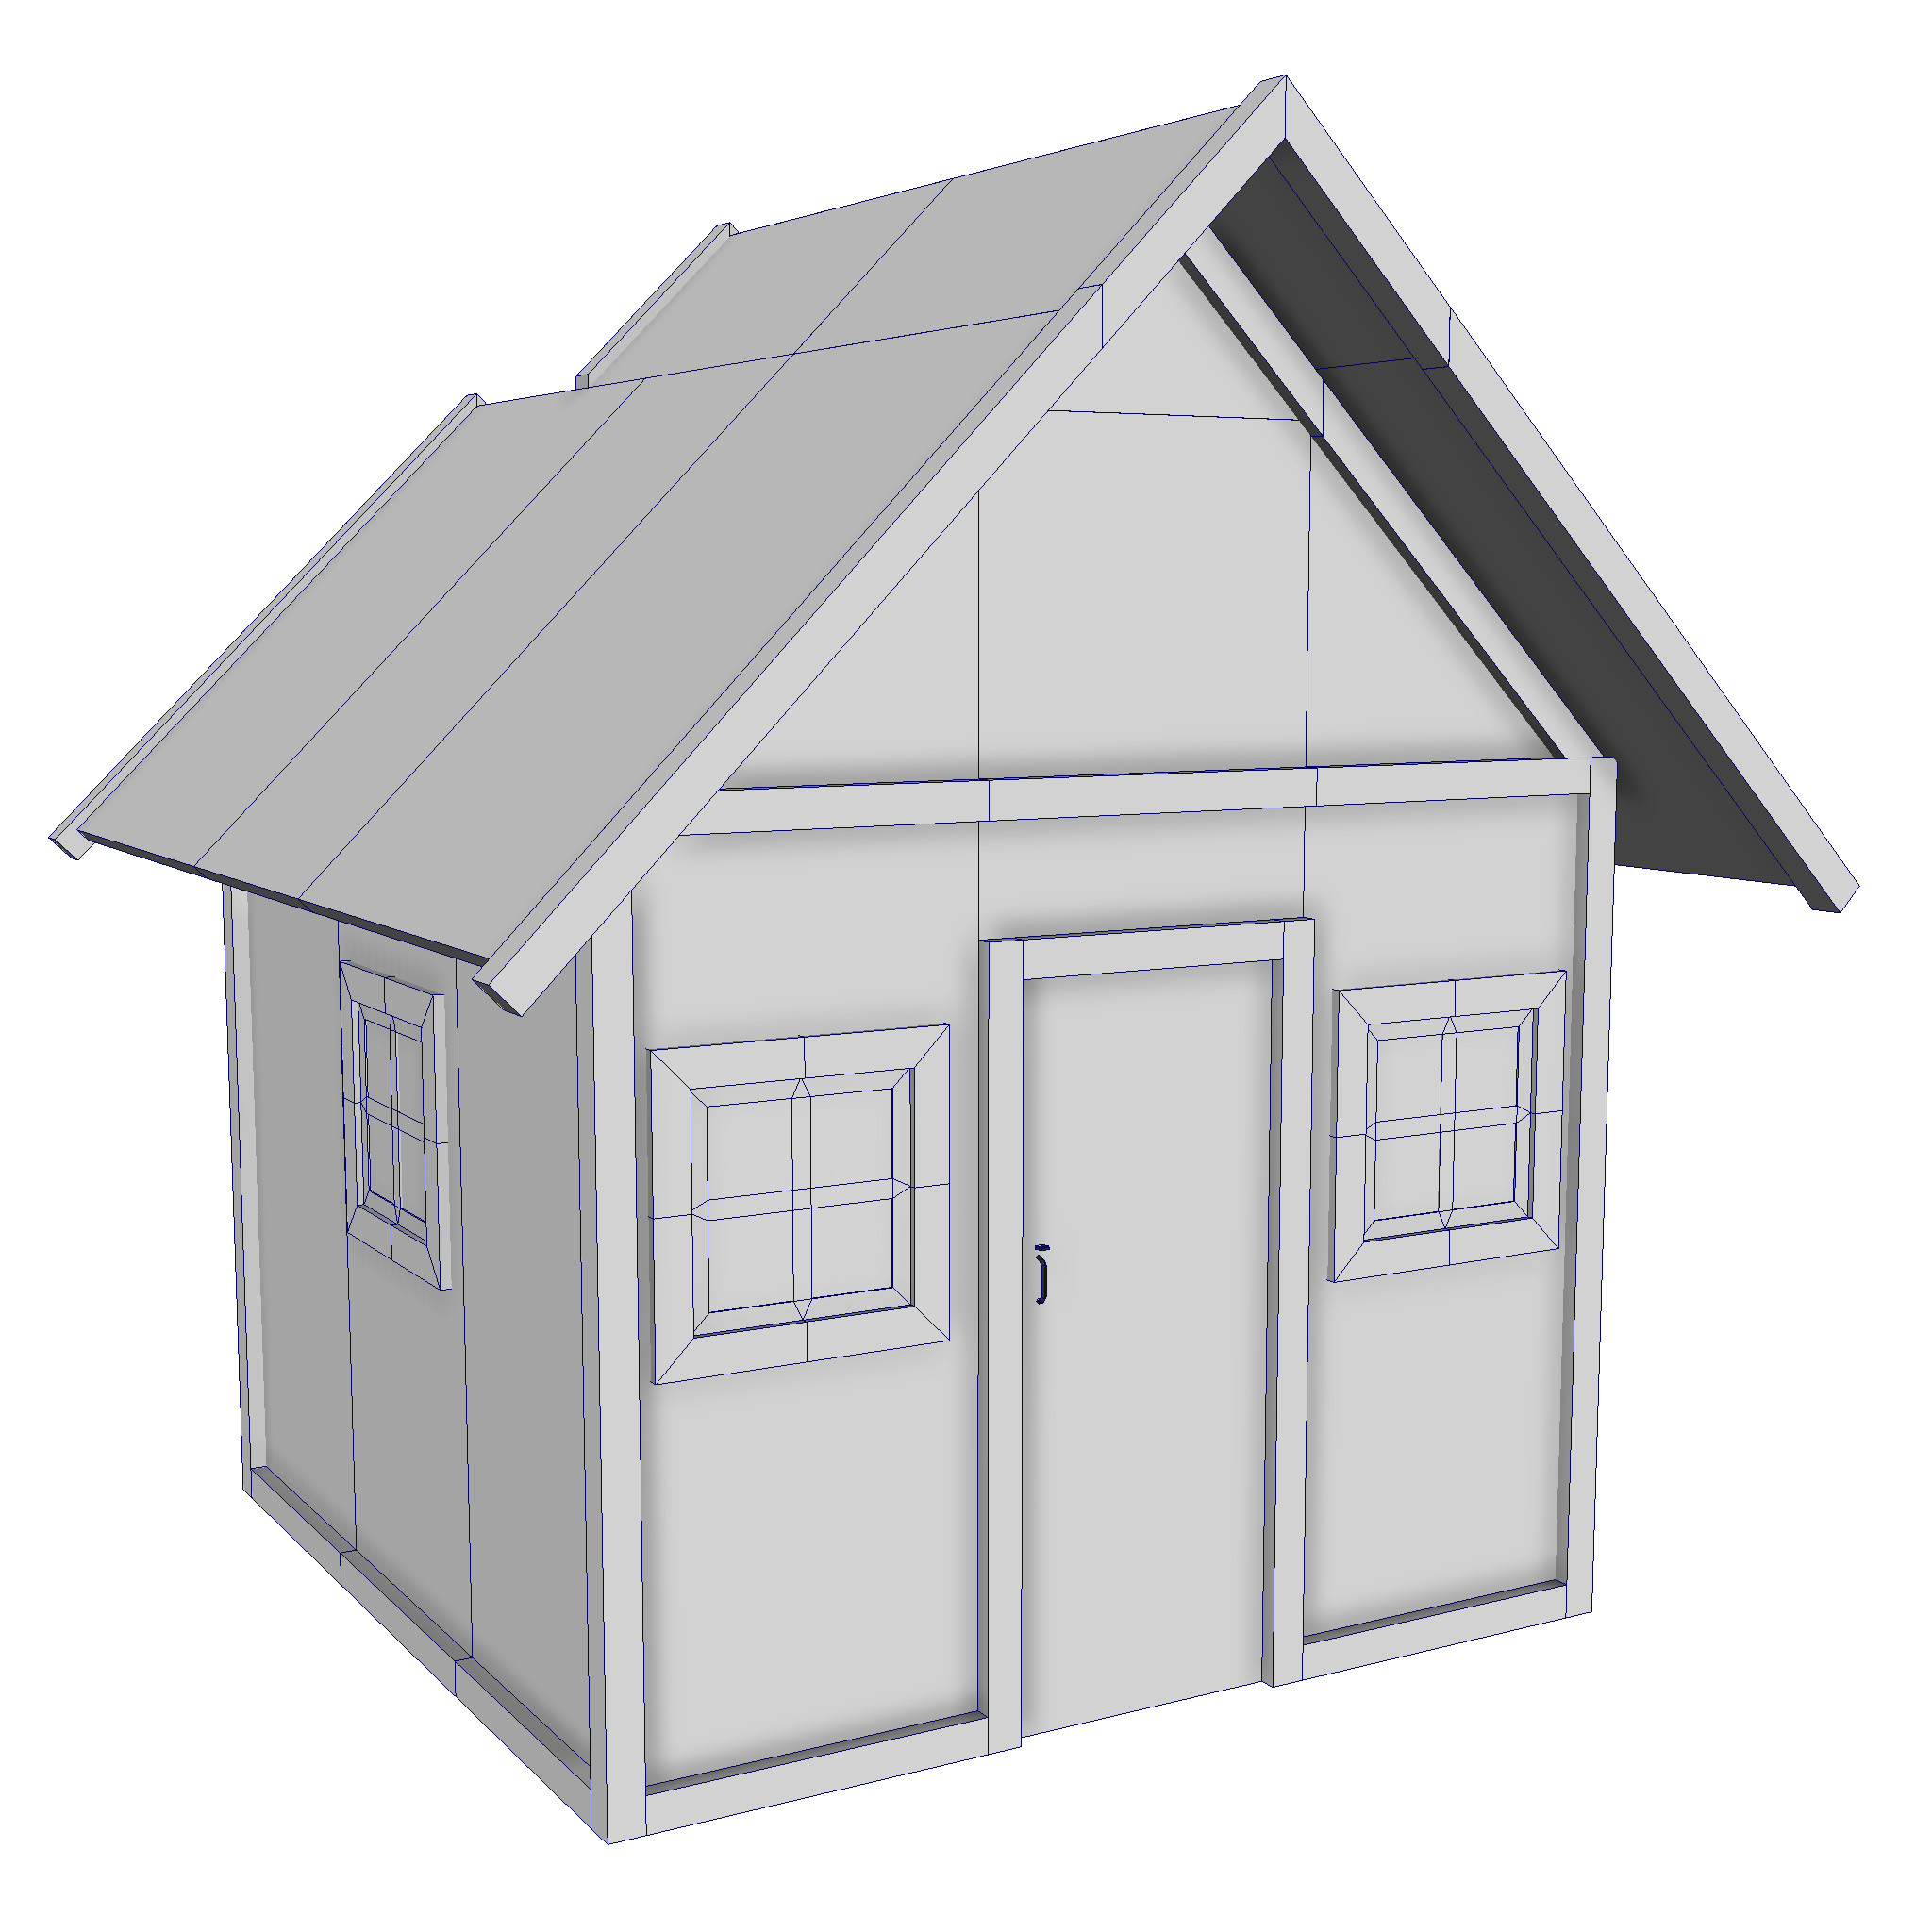 modular wood house set 3d model fbx ma mb 271446